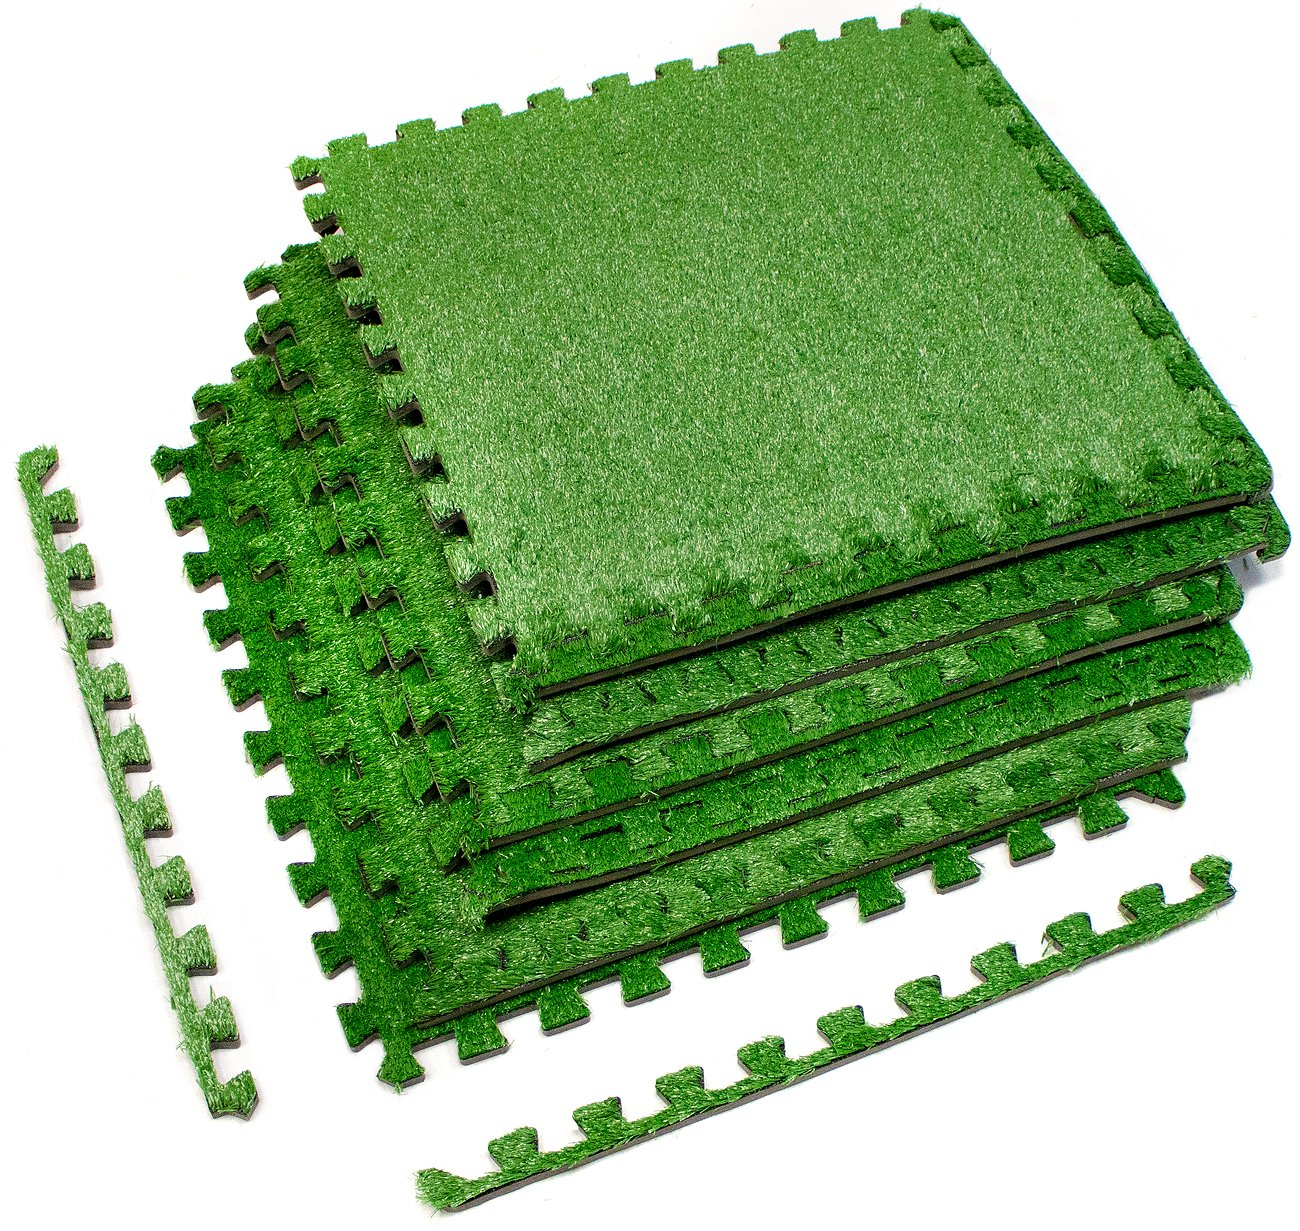 Sorbus Grass Mat Interlocking Floor Tiles – Soft Artificial Grass Carpet – Multipurpose Foam Tile Flooring – Patio, Playroom, Gym, Tradeshow 16 Sq ft (4 Tiles, Borders) (6 Tiles (24 Sq ft))